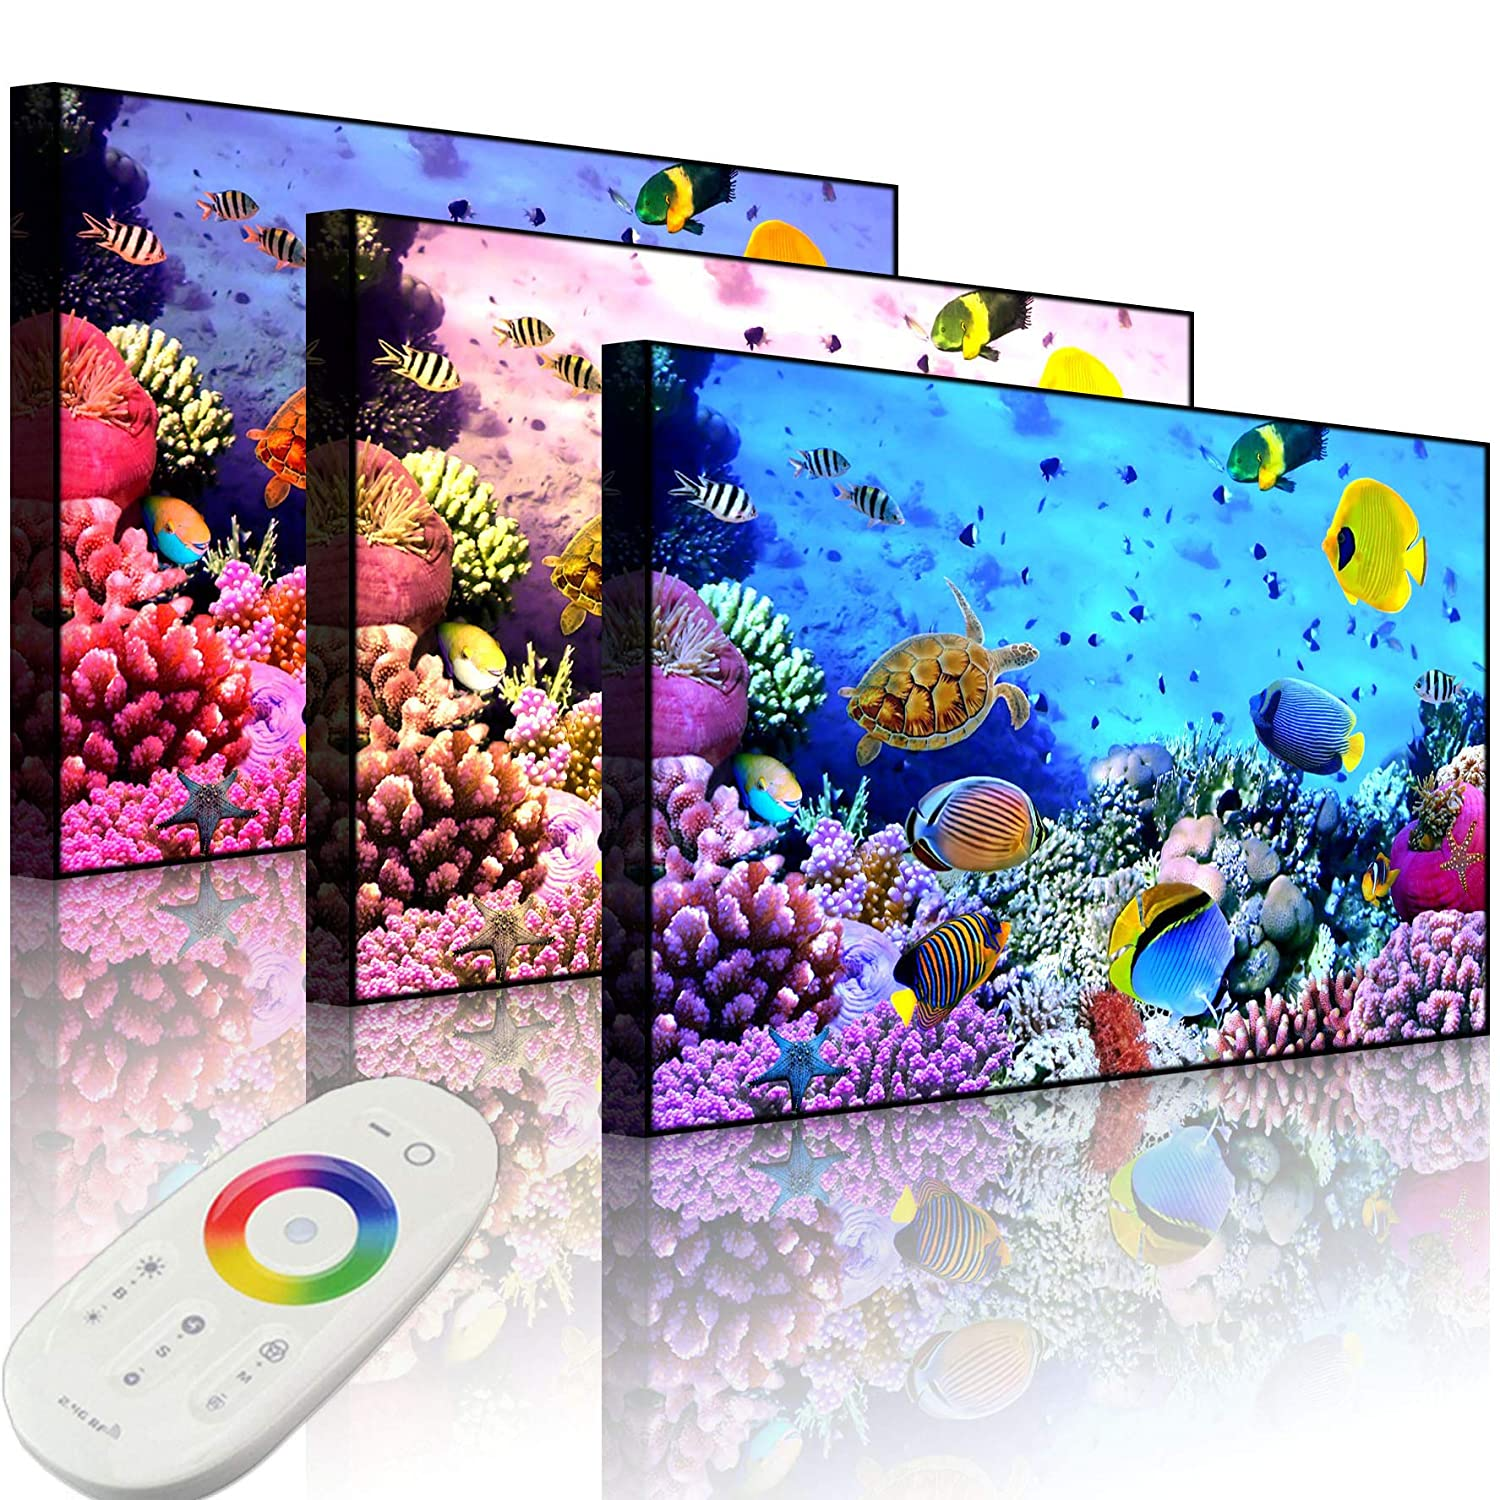 Lightbox-Multicolor   LED Bild Leuchtbild   Bunte Fische über Korallenriff   60x40 cm   Front Lighted